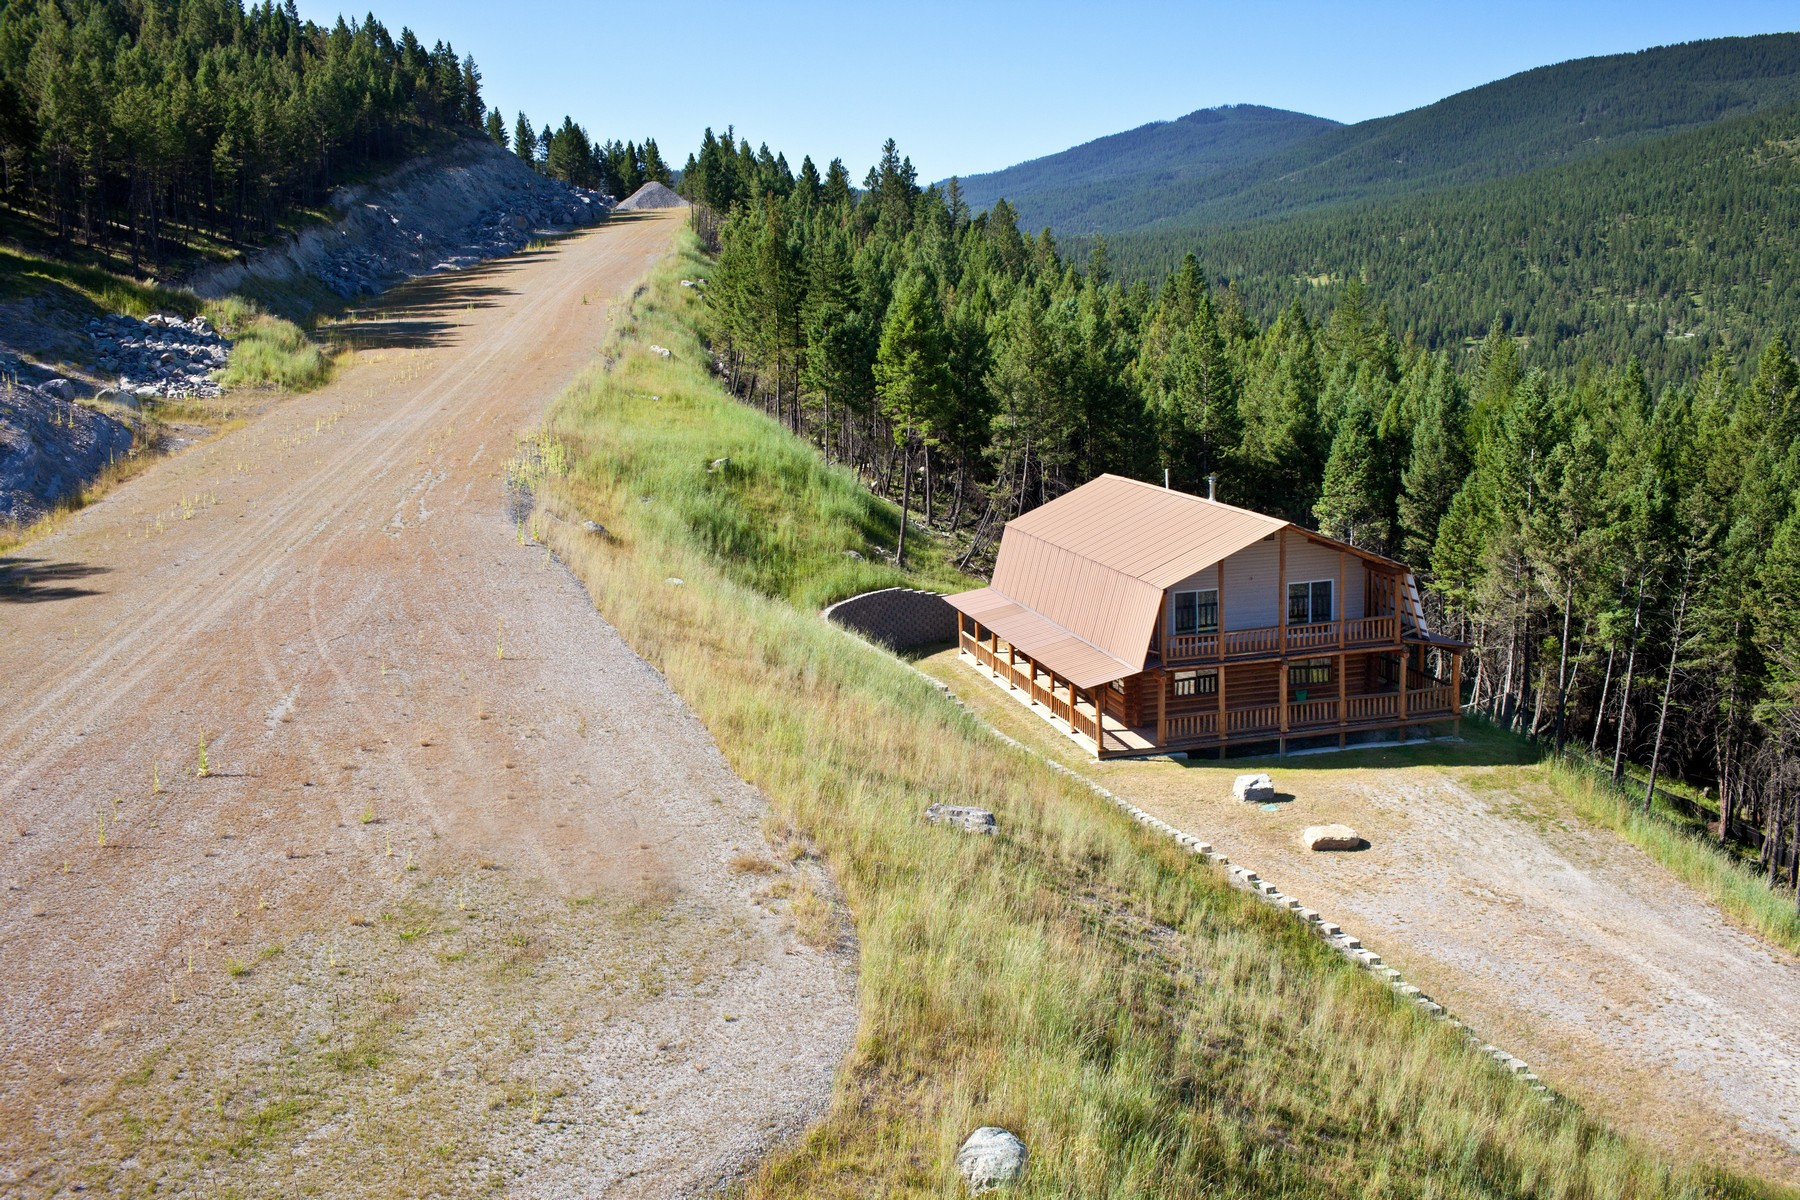 Additional photo for property listing at 1390 Coon Hollow Rd , Kila, MT 59920 1390  Coon Hollow Rd Kila, Montana 59920 United States